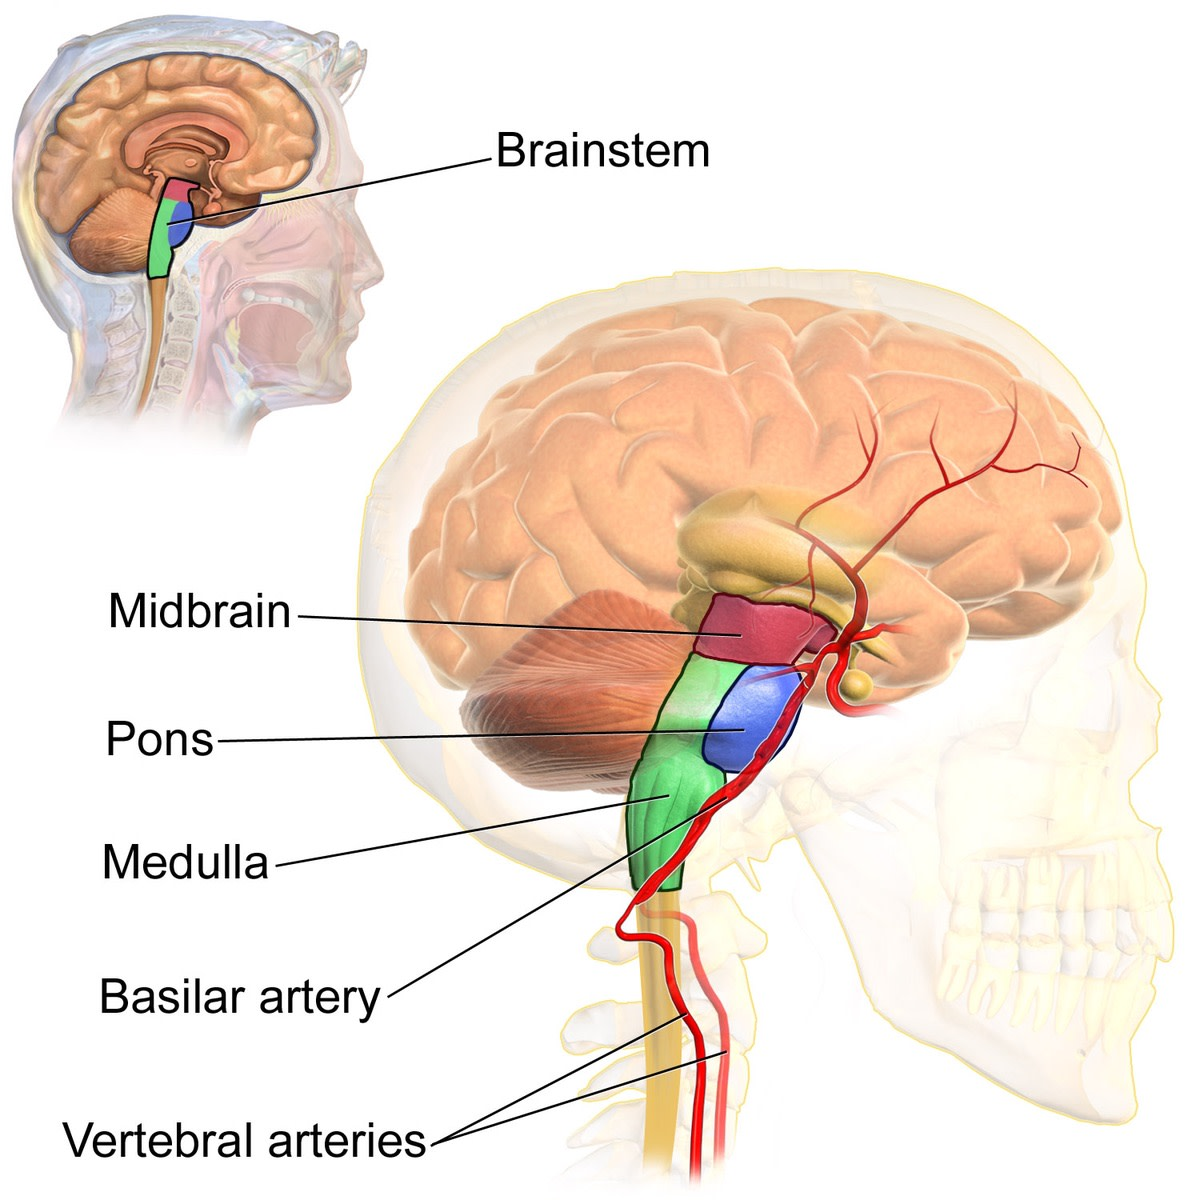 The central nervous system consists of the brain, brainstem, and spinal cord.